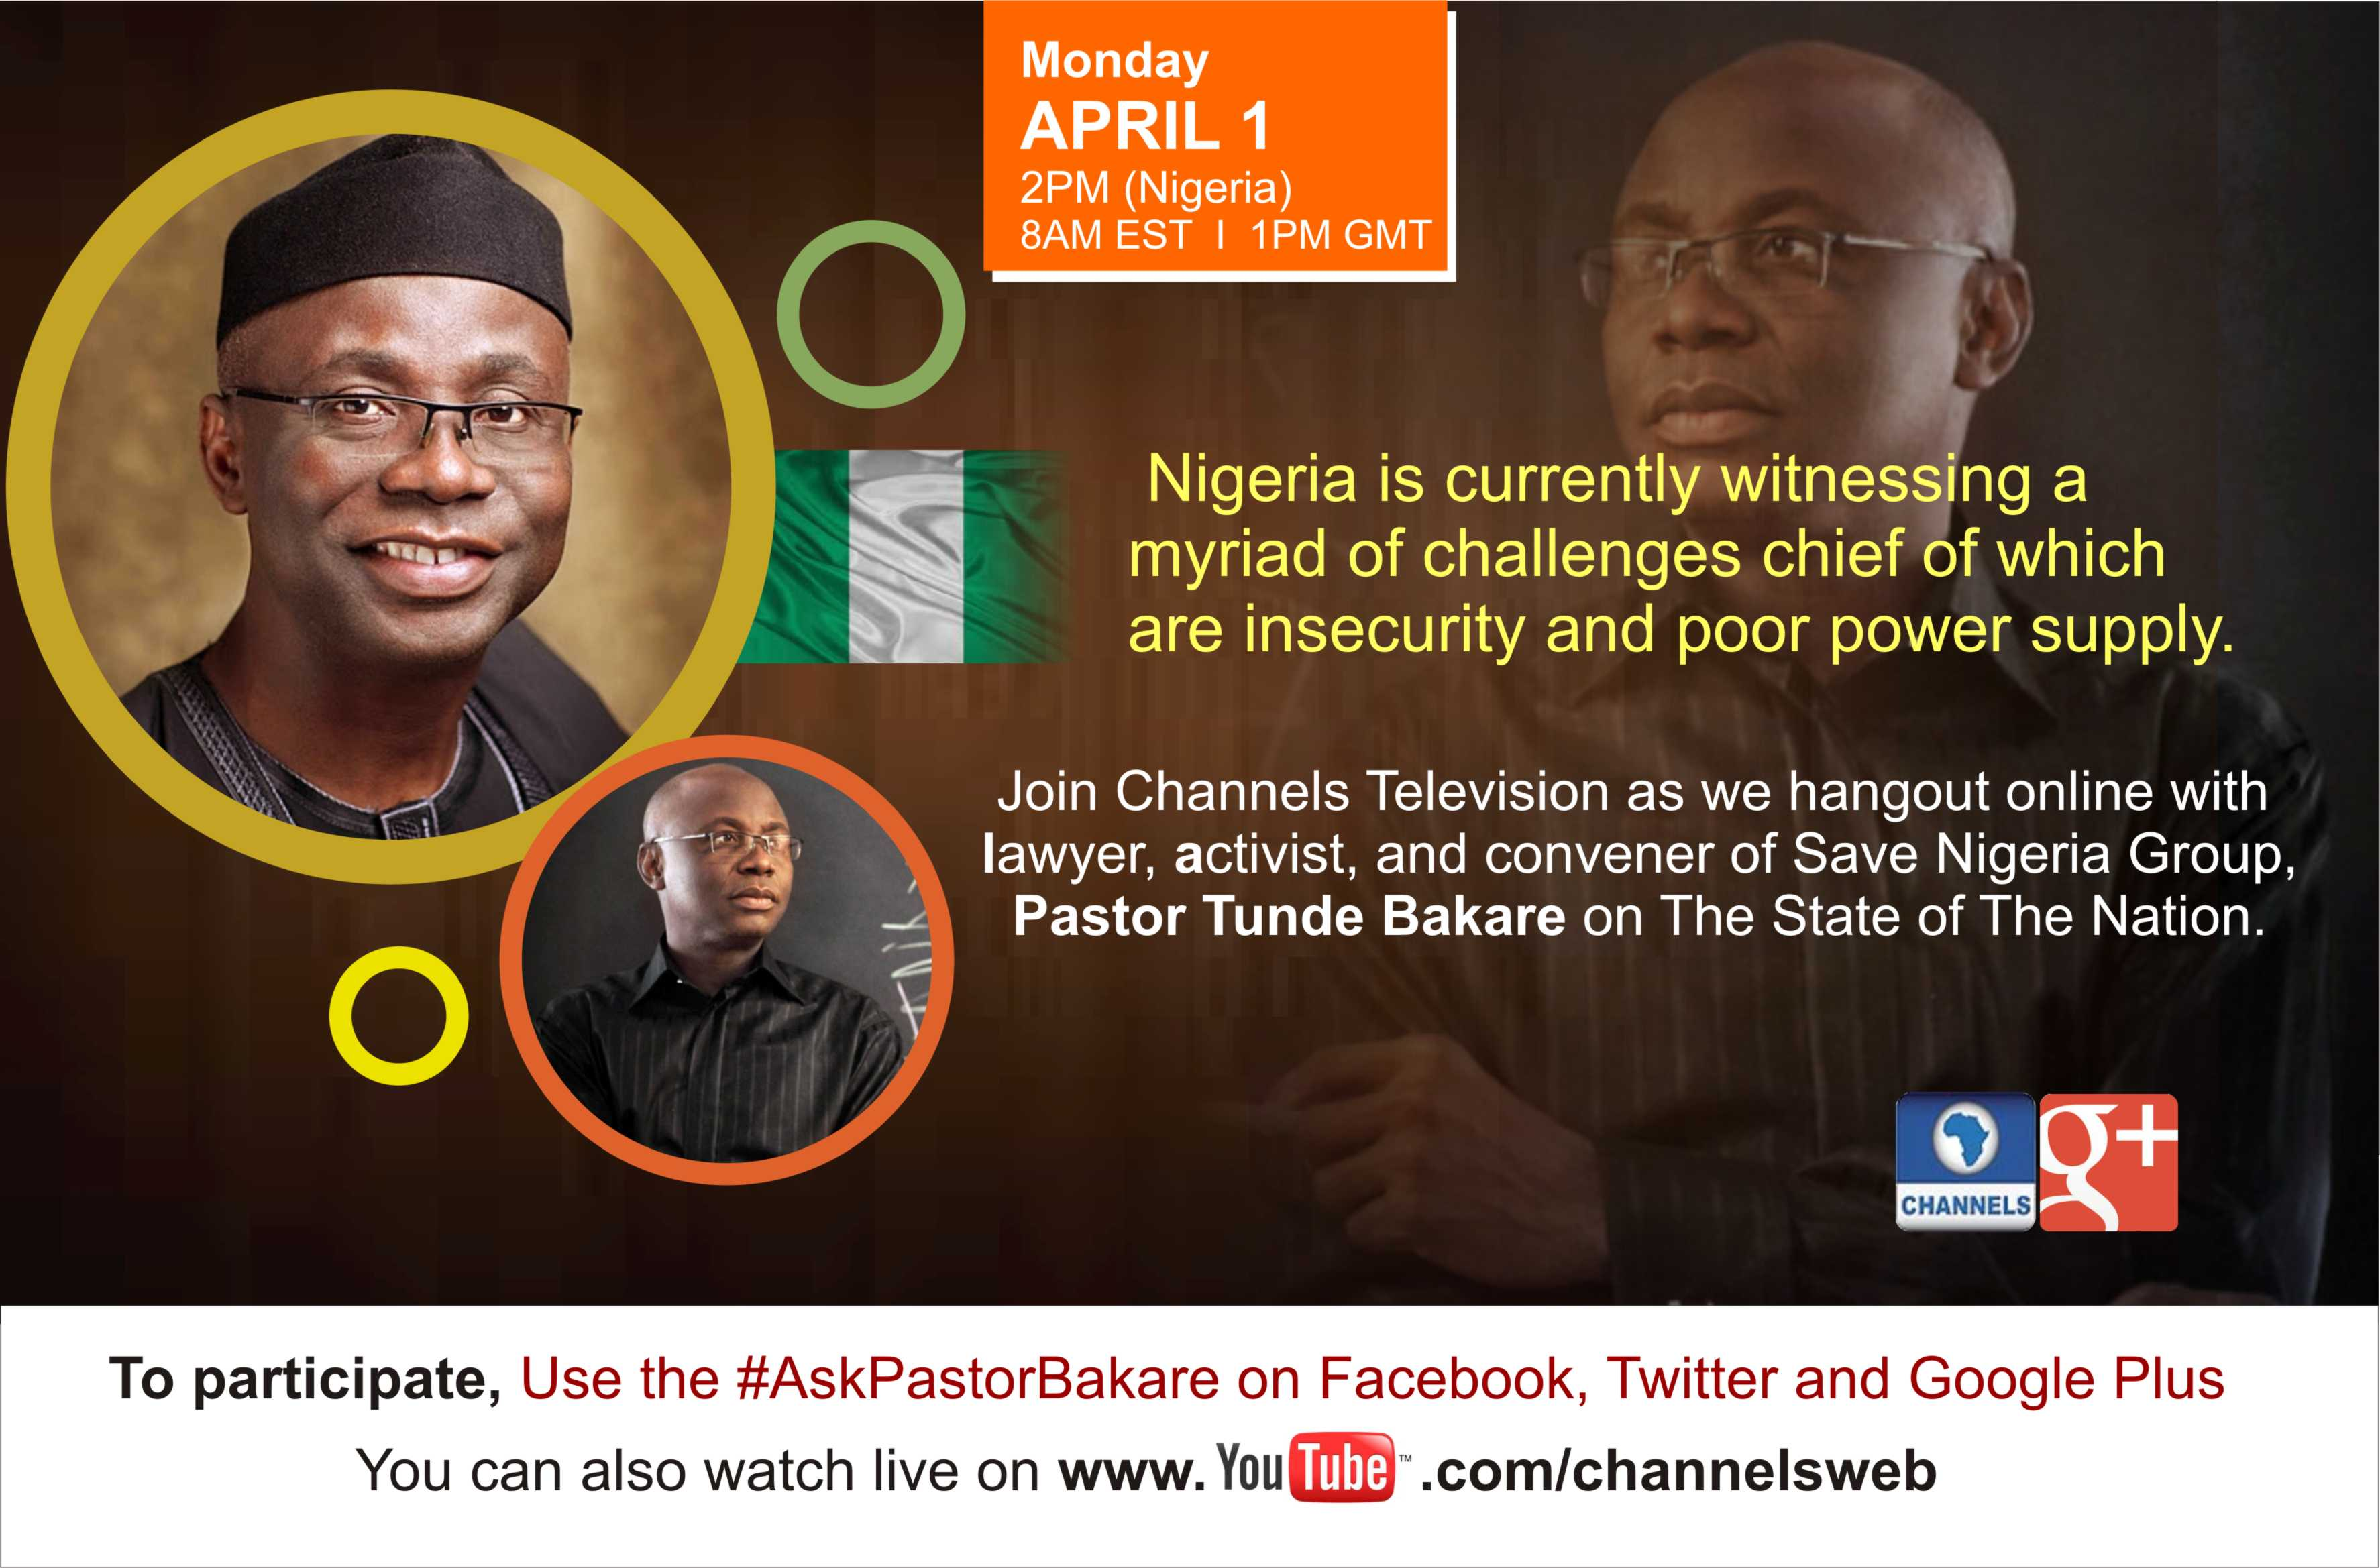 Google+ Hangout With Tunde Bakare on State of The Nation